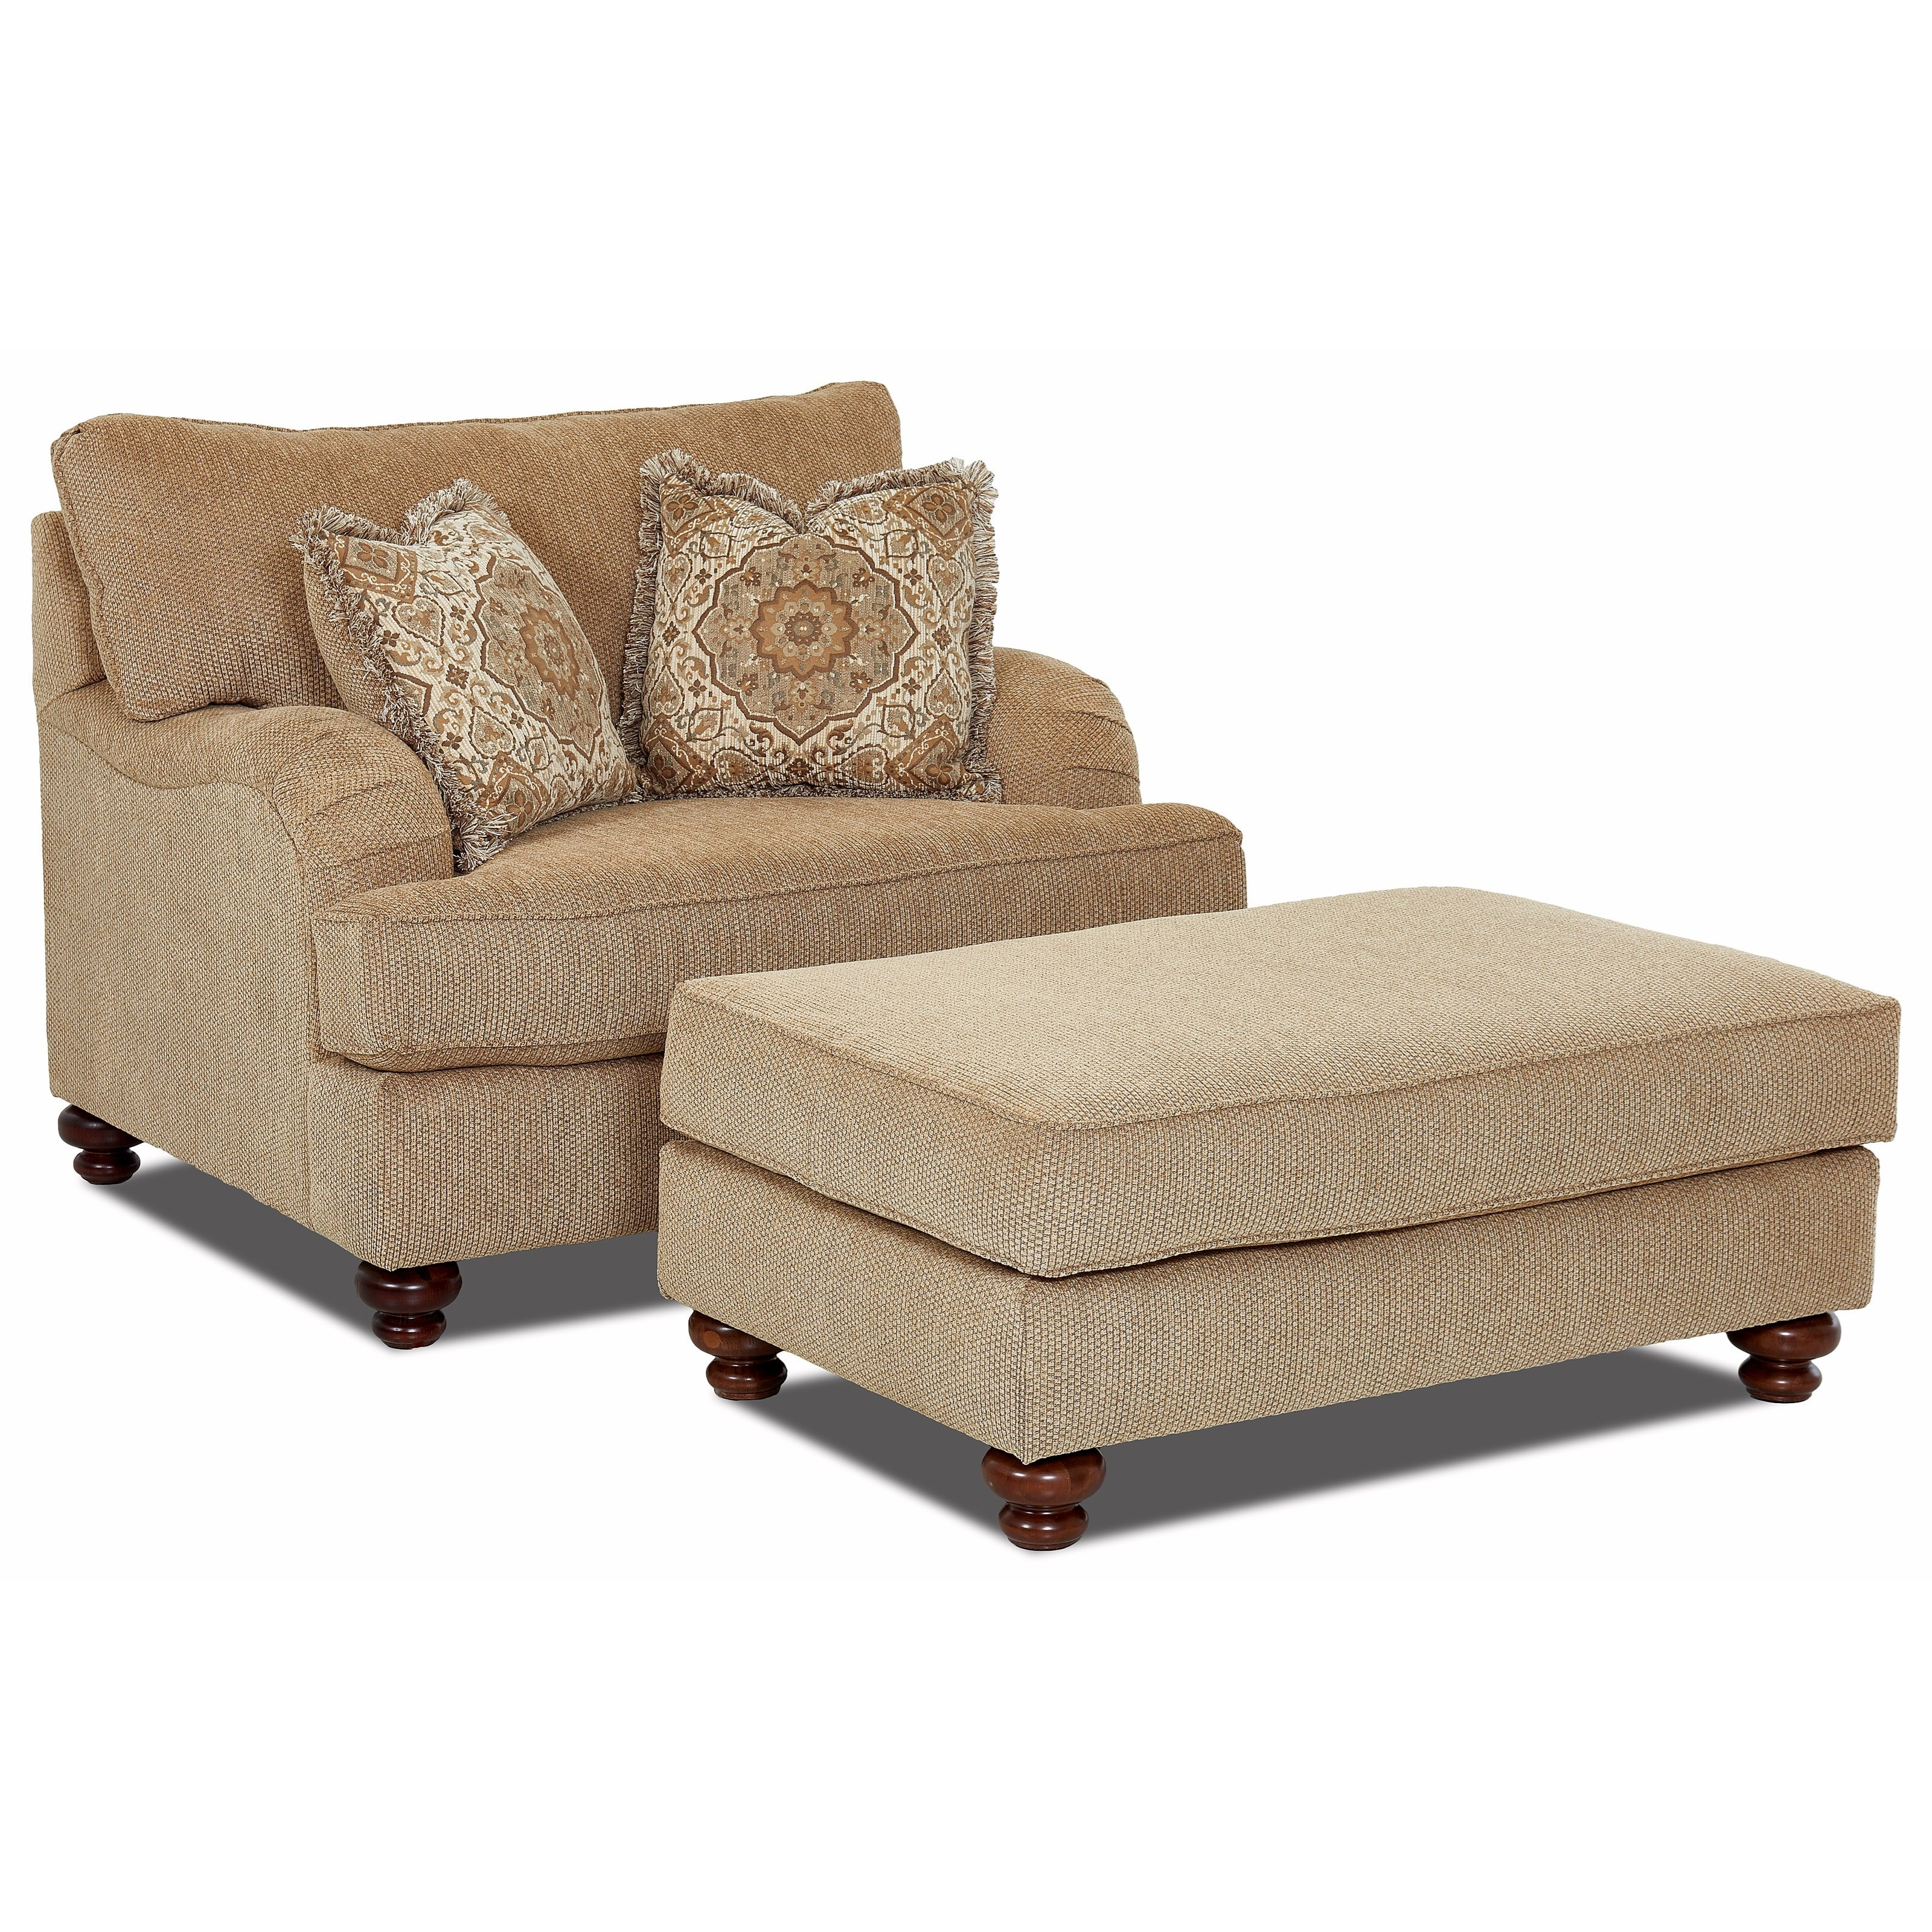 Klaussner declan oversized chair and ottoman set royal for Settee and chair set